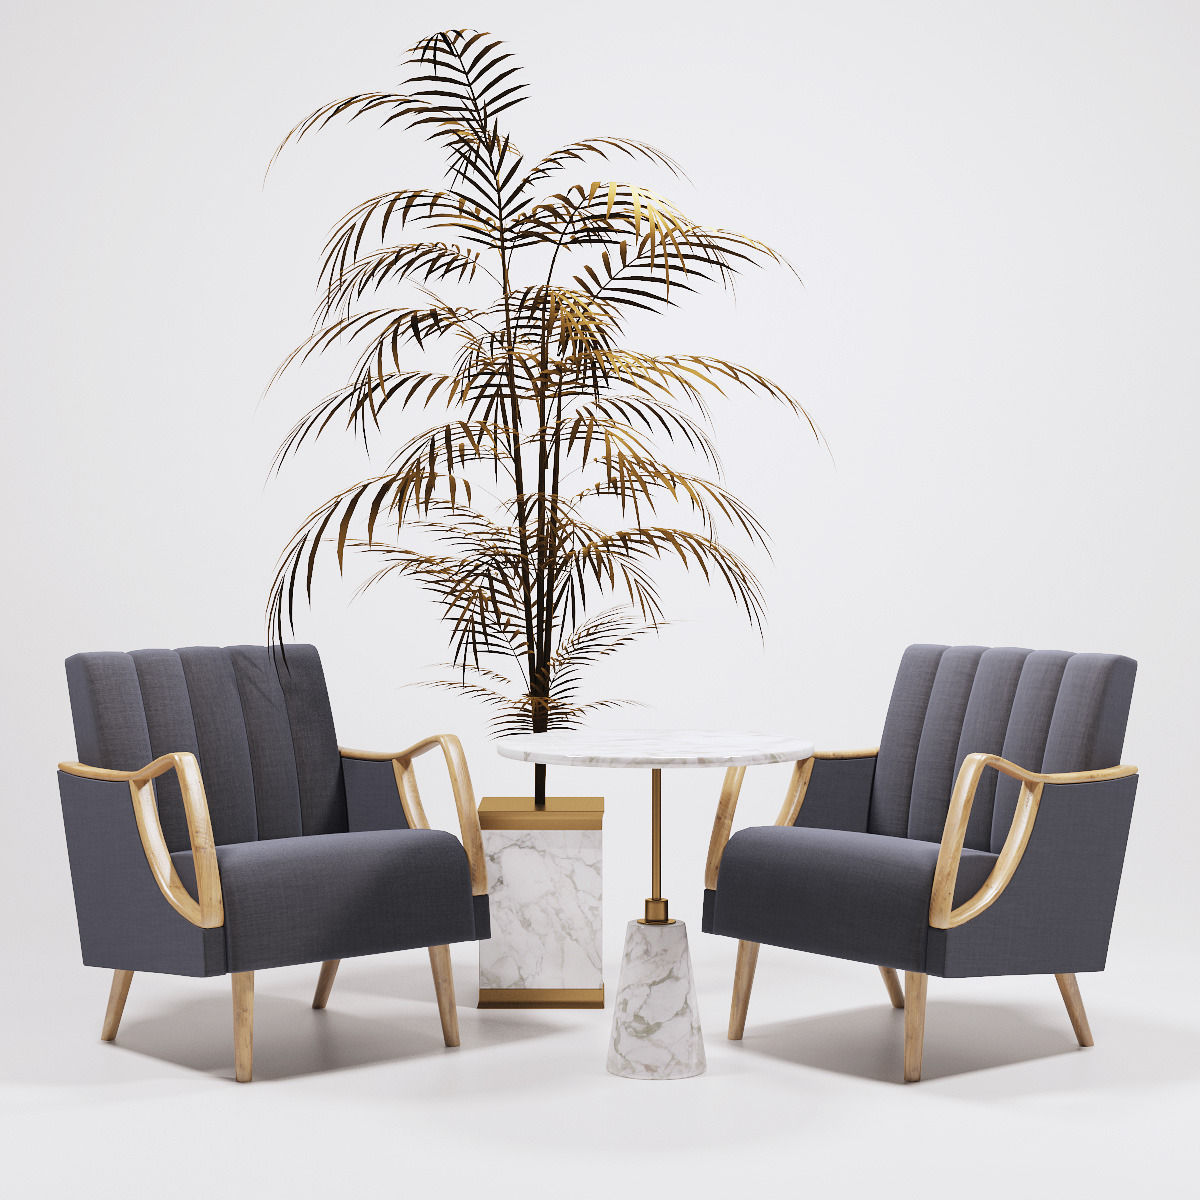 Horta Fauteuil Armchairs and golden palm